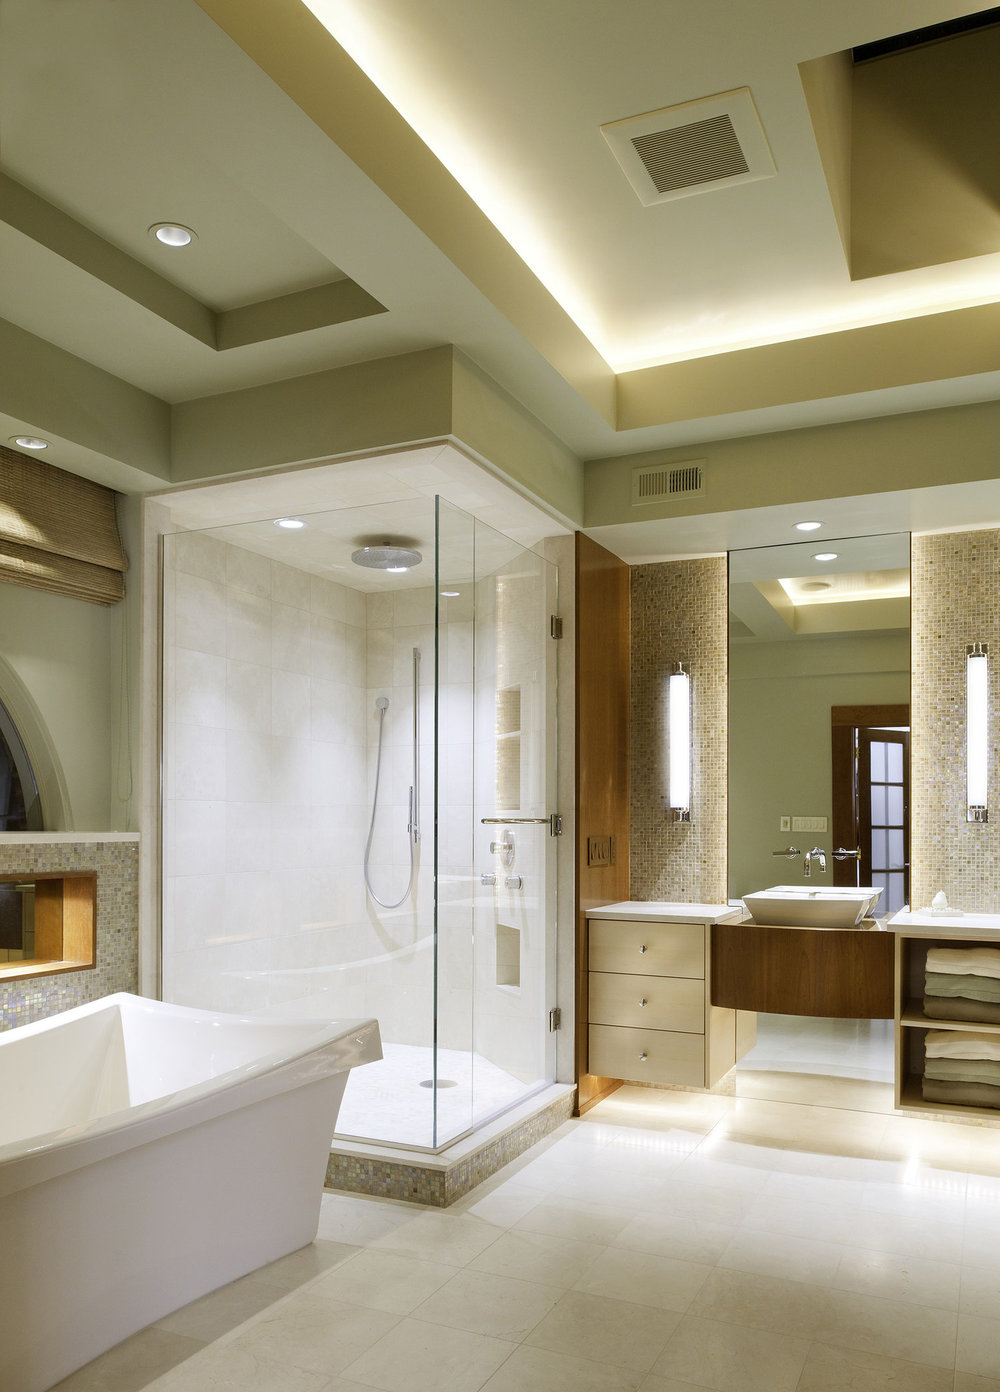 kitchen_bath_concepts_wholehome5_6.jpg